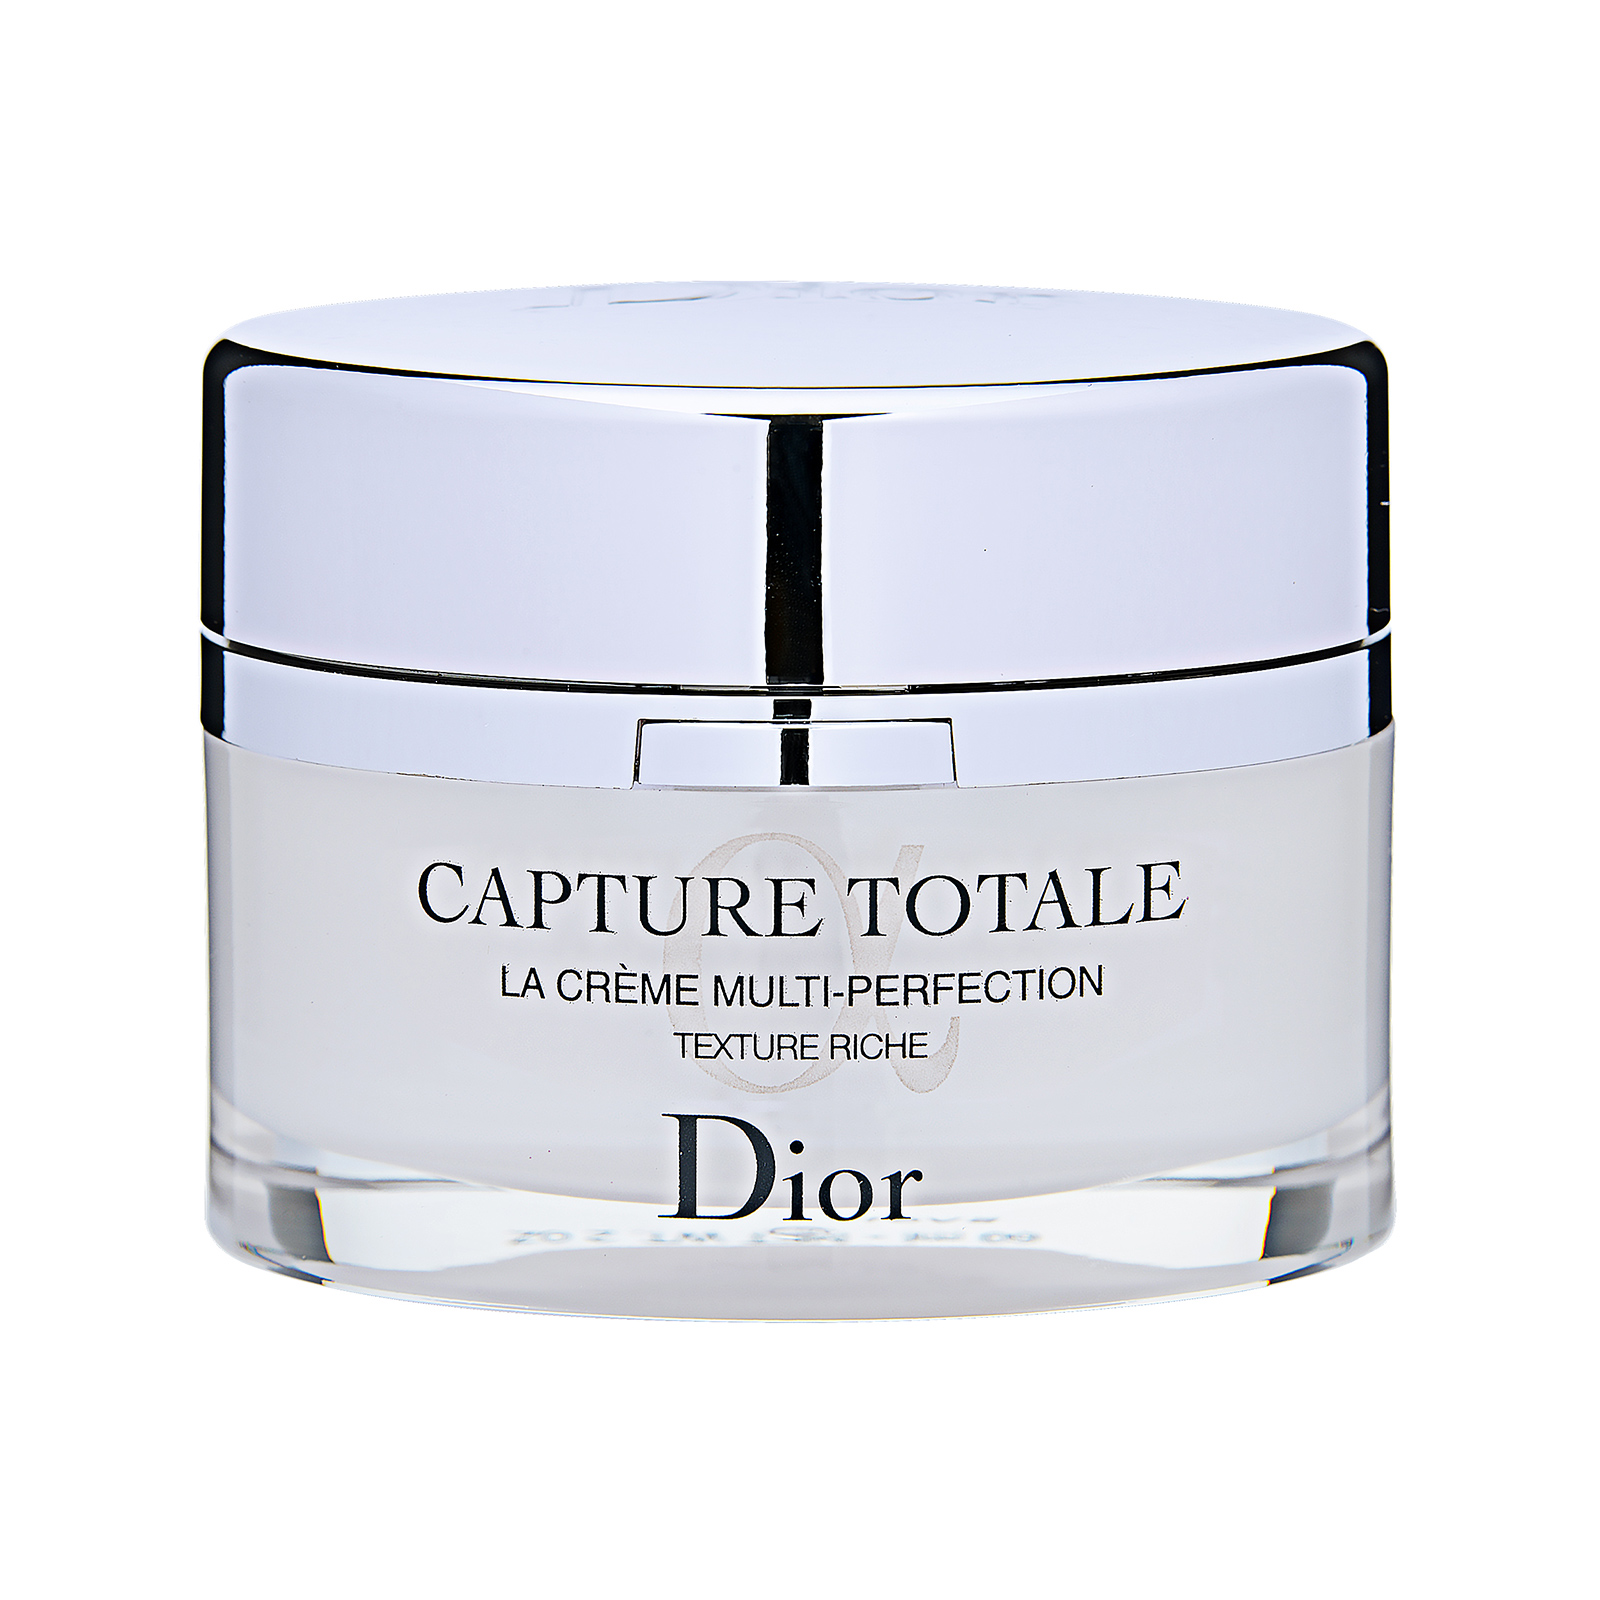 Christian Dior Capture Totale Multi-Perfection Creme Rich Texture 2oz, 60ml women